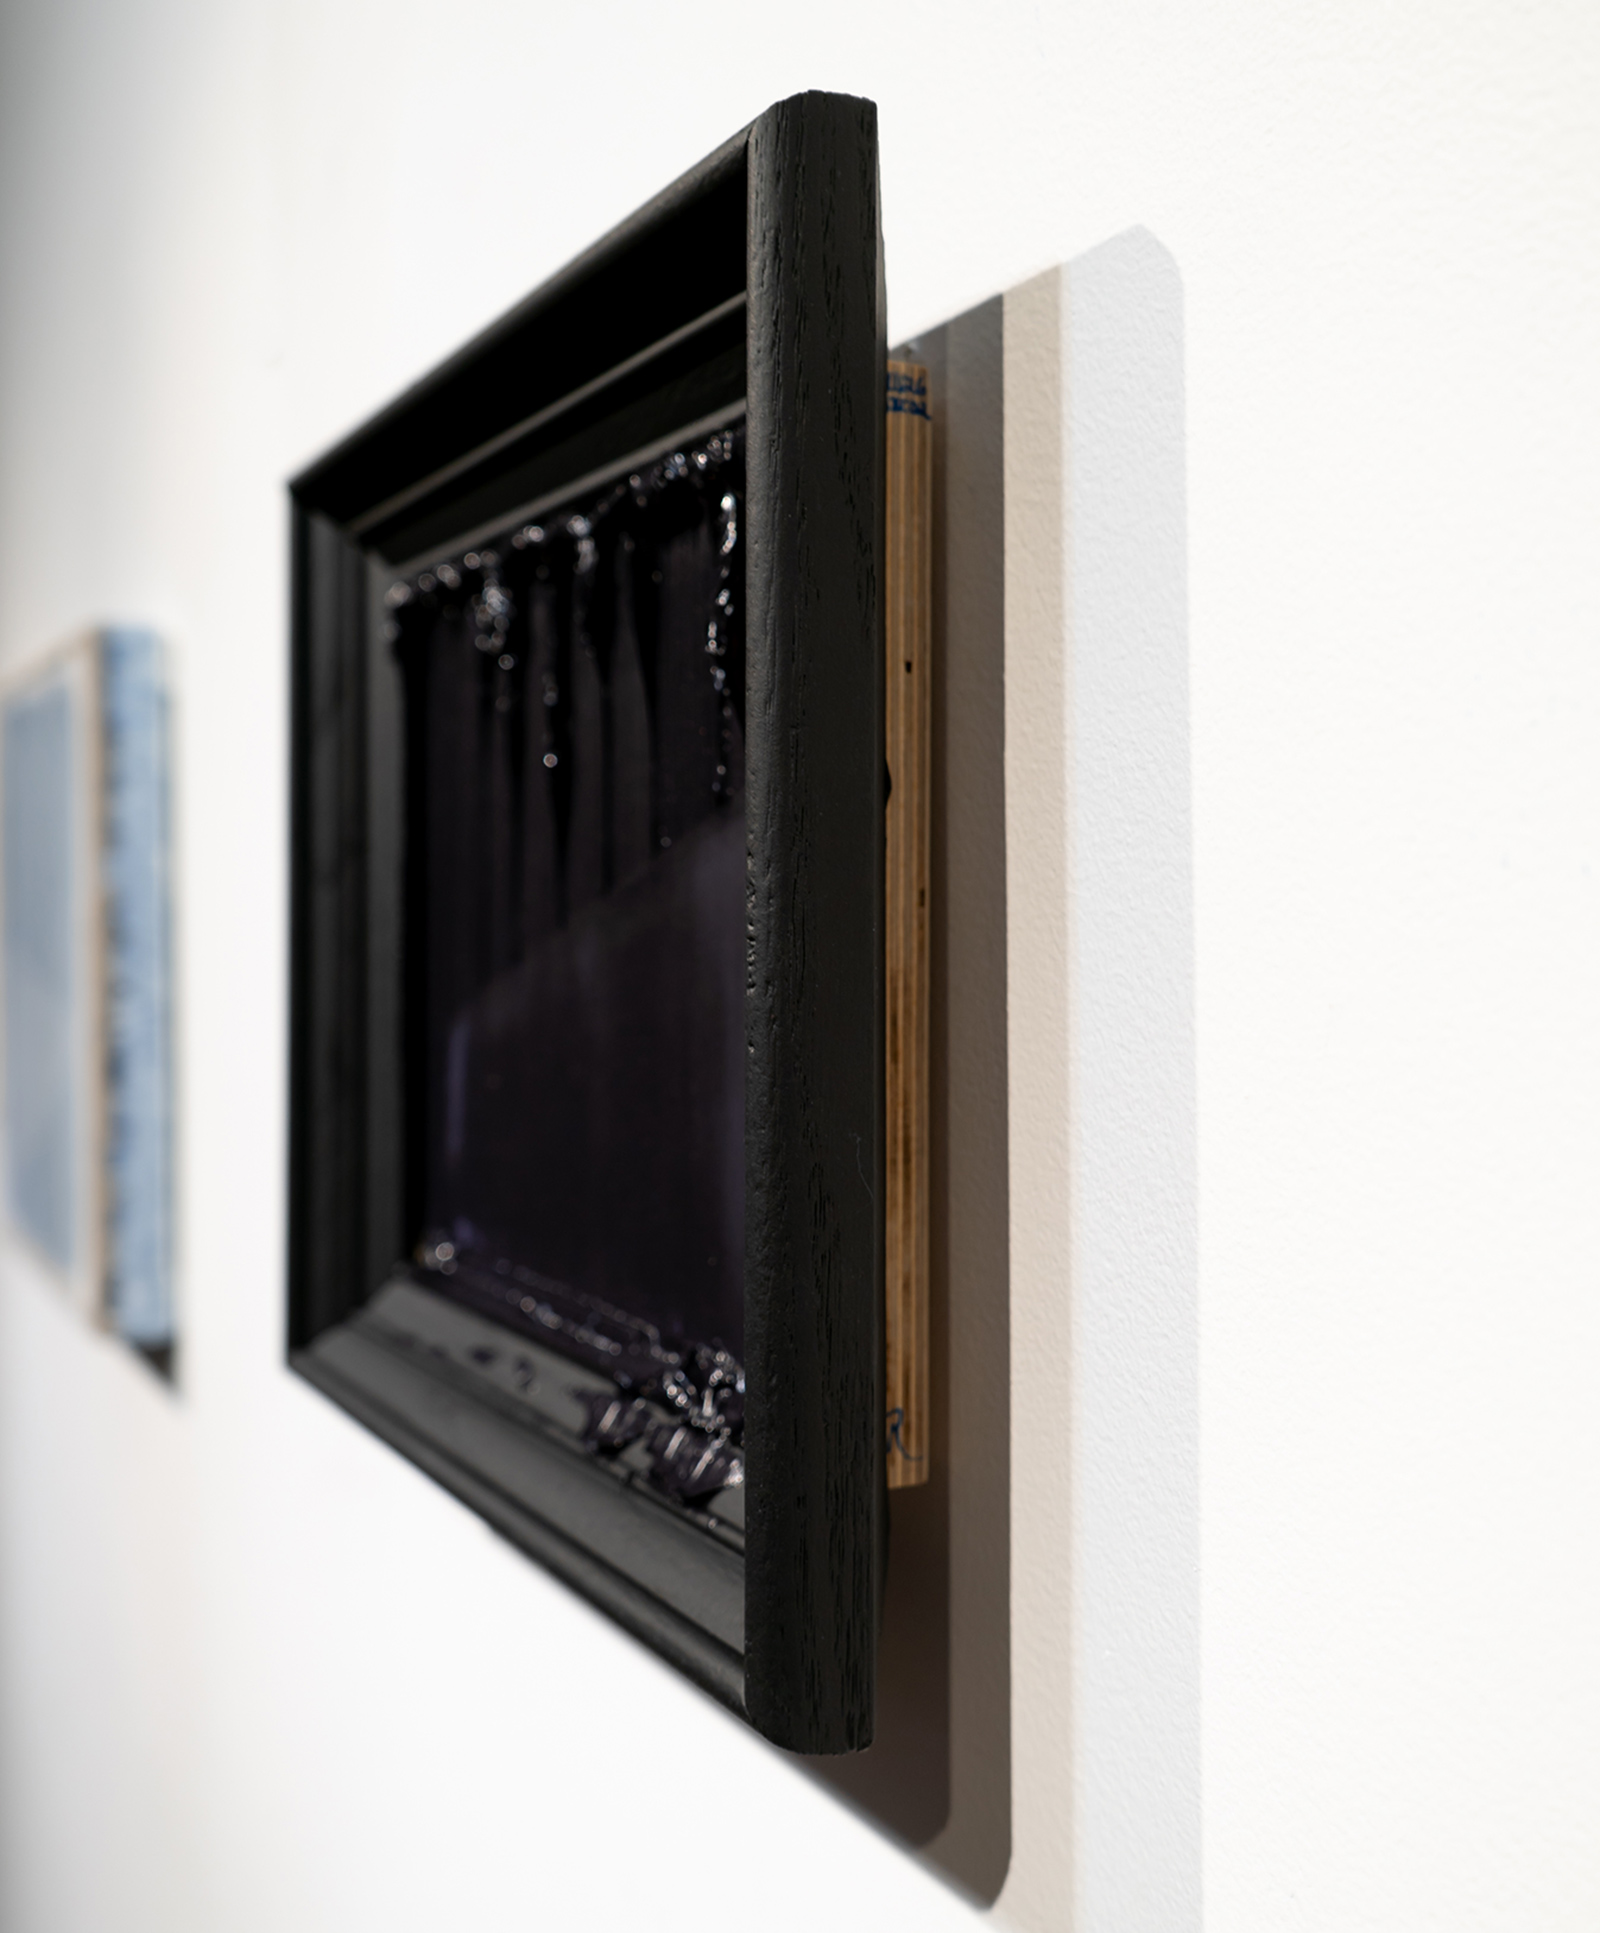 Randy Gibson   Rational Wedge 9:4 (Found)   2018   32x27x6.5 cm   Oil on Plywood in Found Frame, Spraypaint